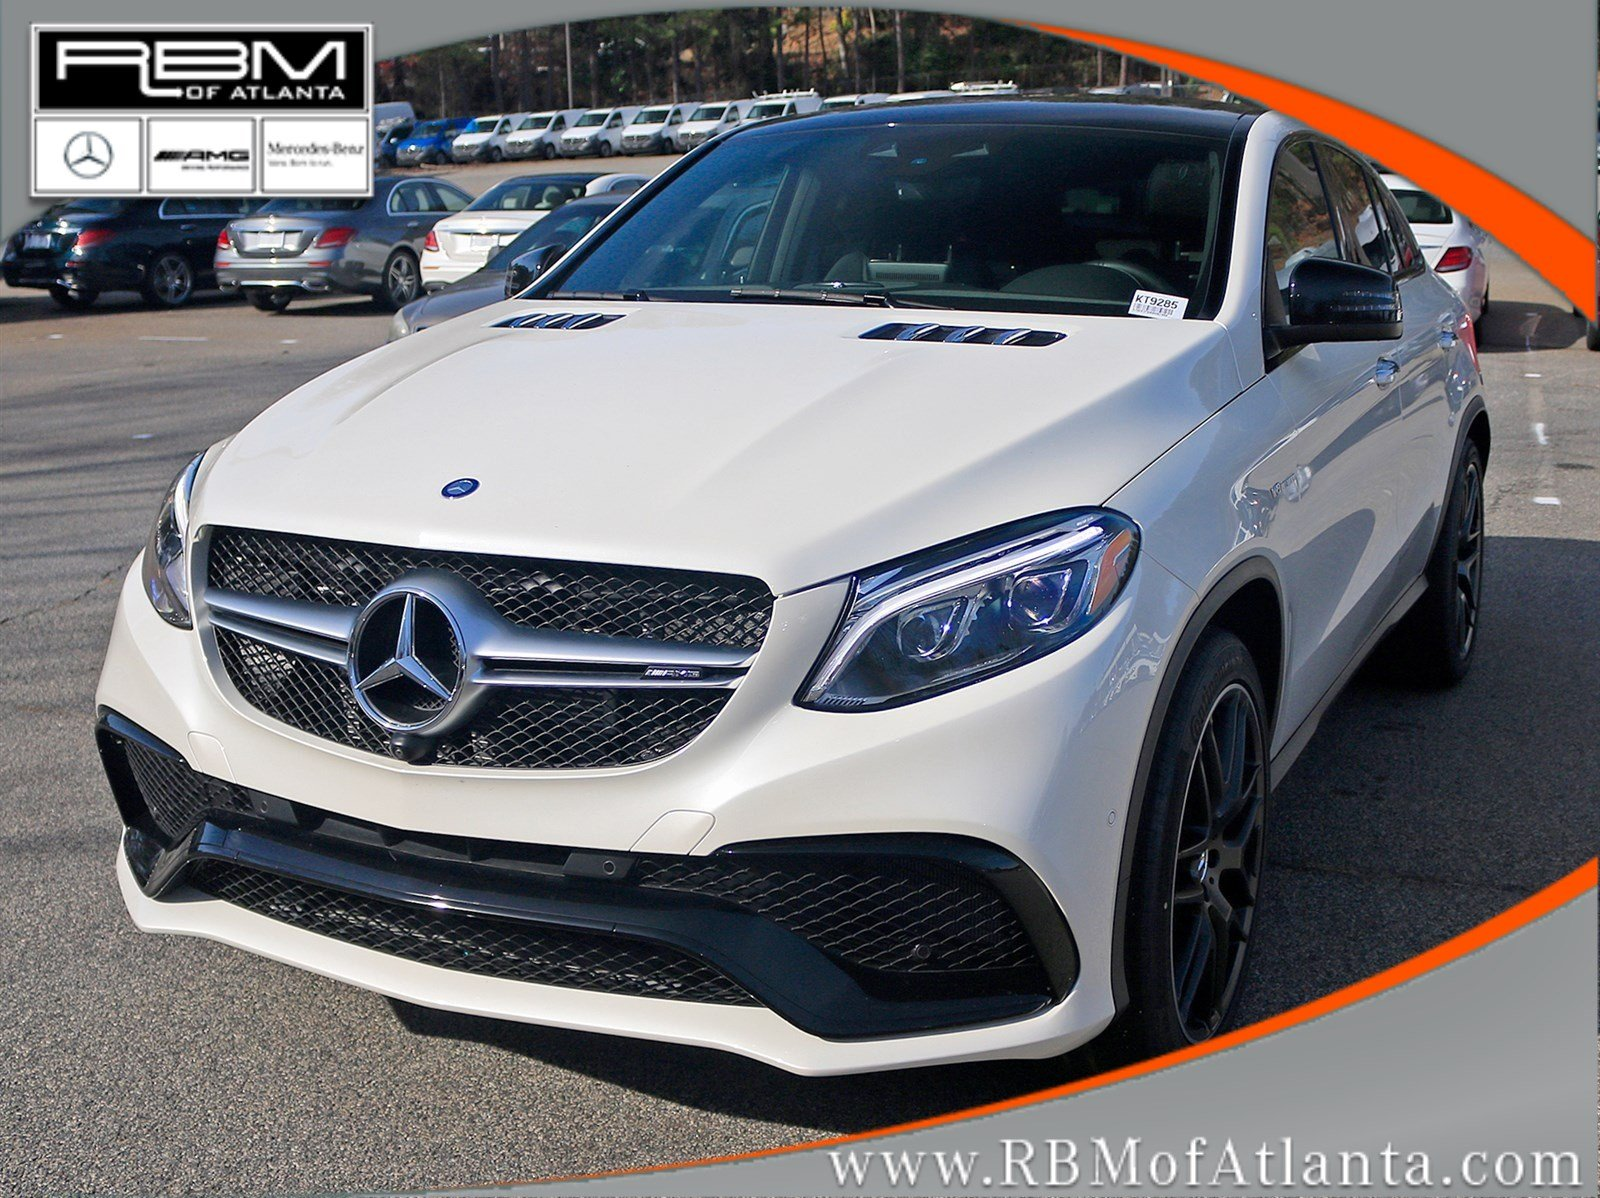 new 2017 mercedes benz gle gle 63 s amg coupe coupe in atlanta kt9285 rbm of atlanta. Black Bedroom Furniture Sets. Home Design Ideas